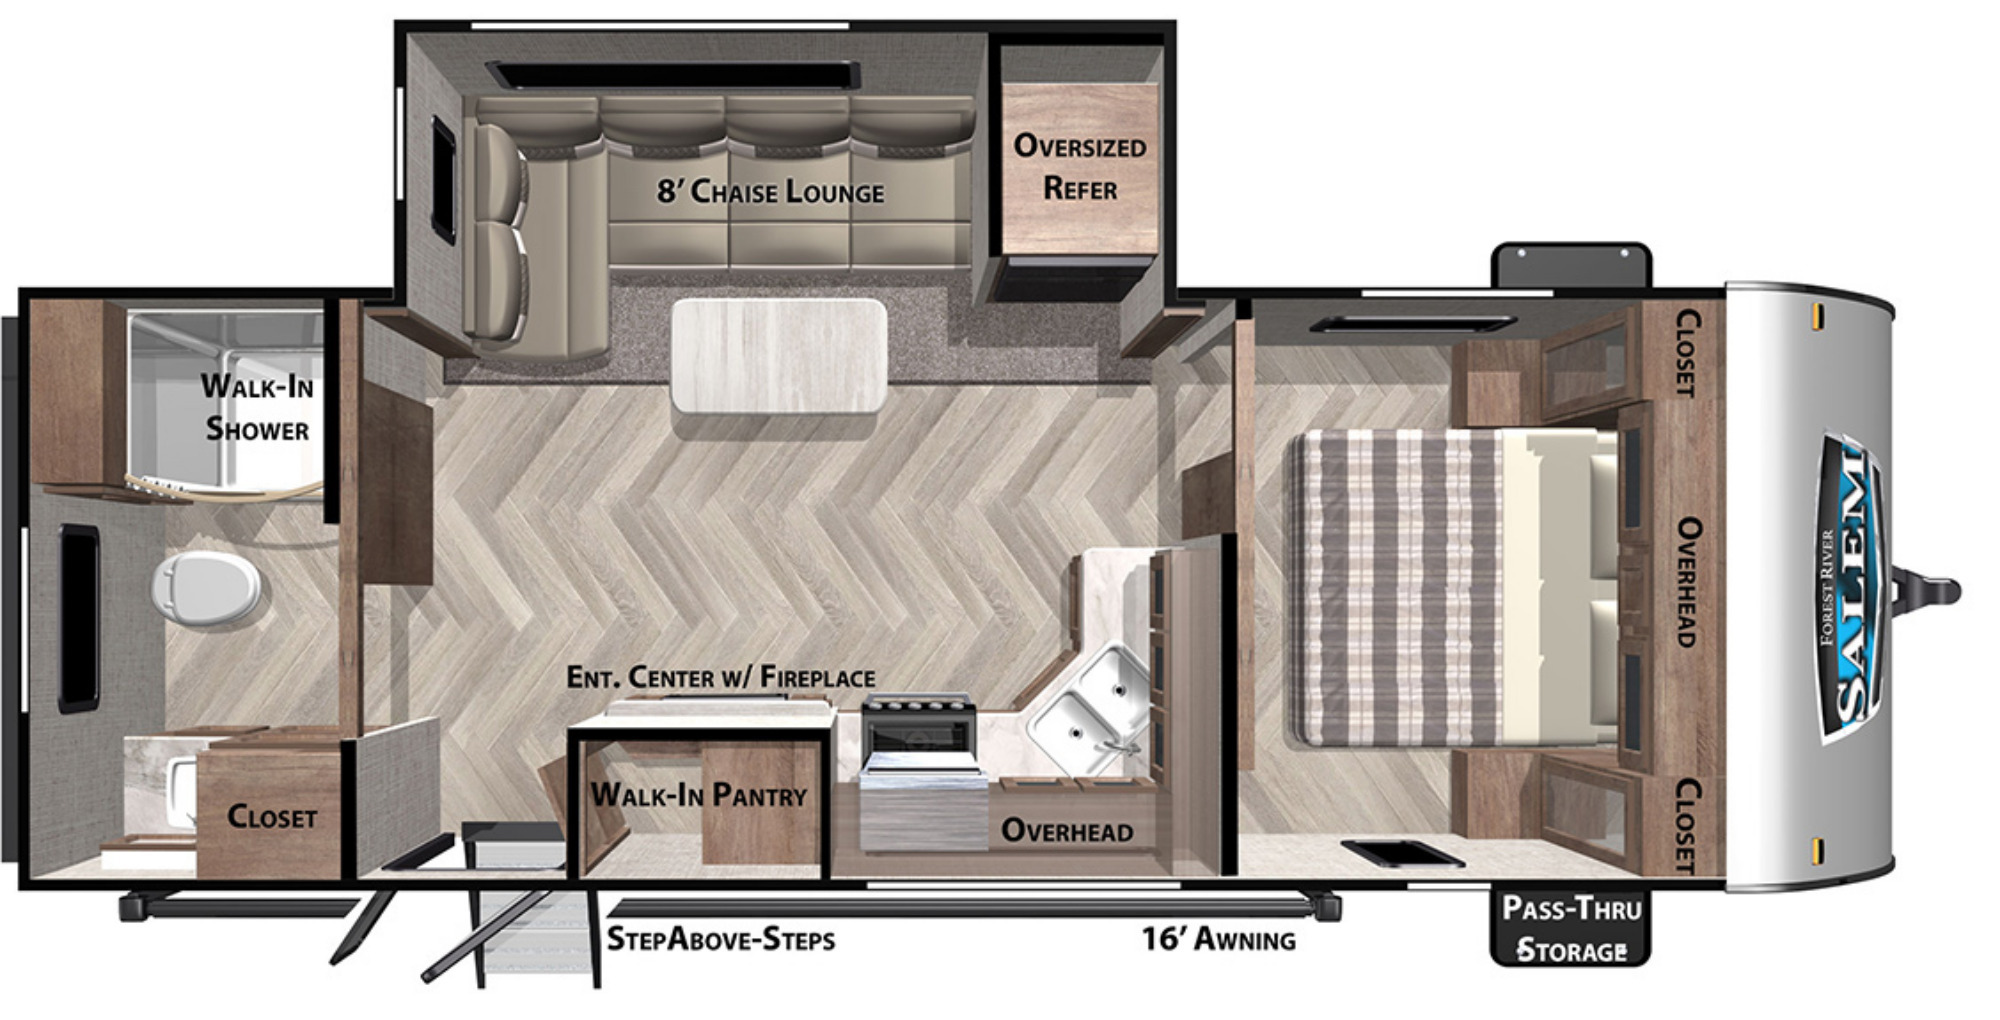 View Floor Plan for 2022 FOREST RIVER SALEM 22RBS